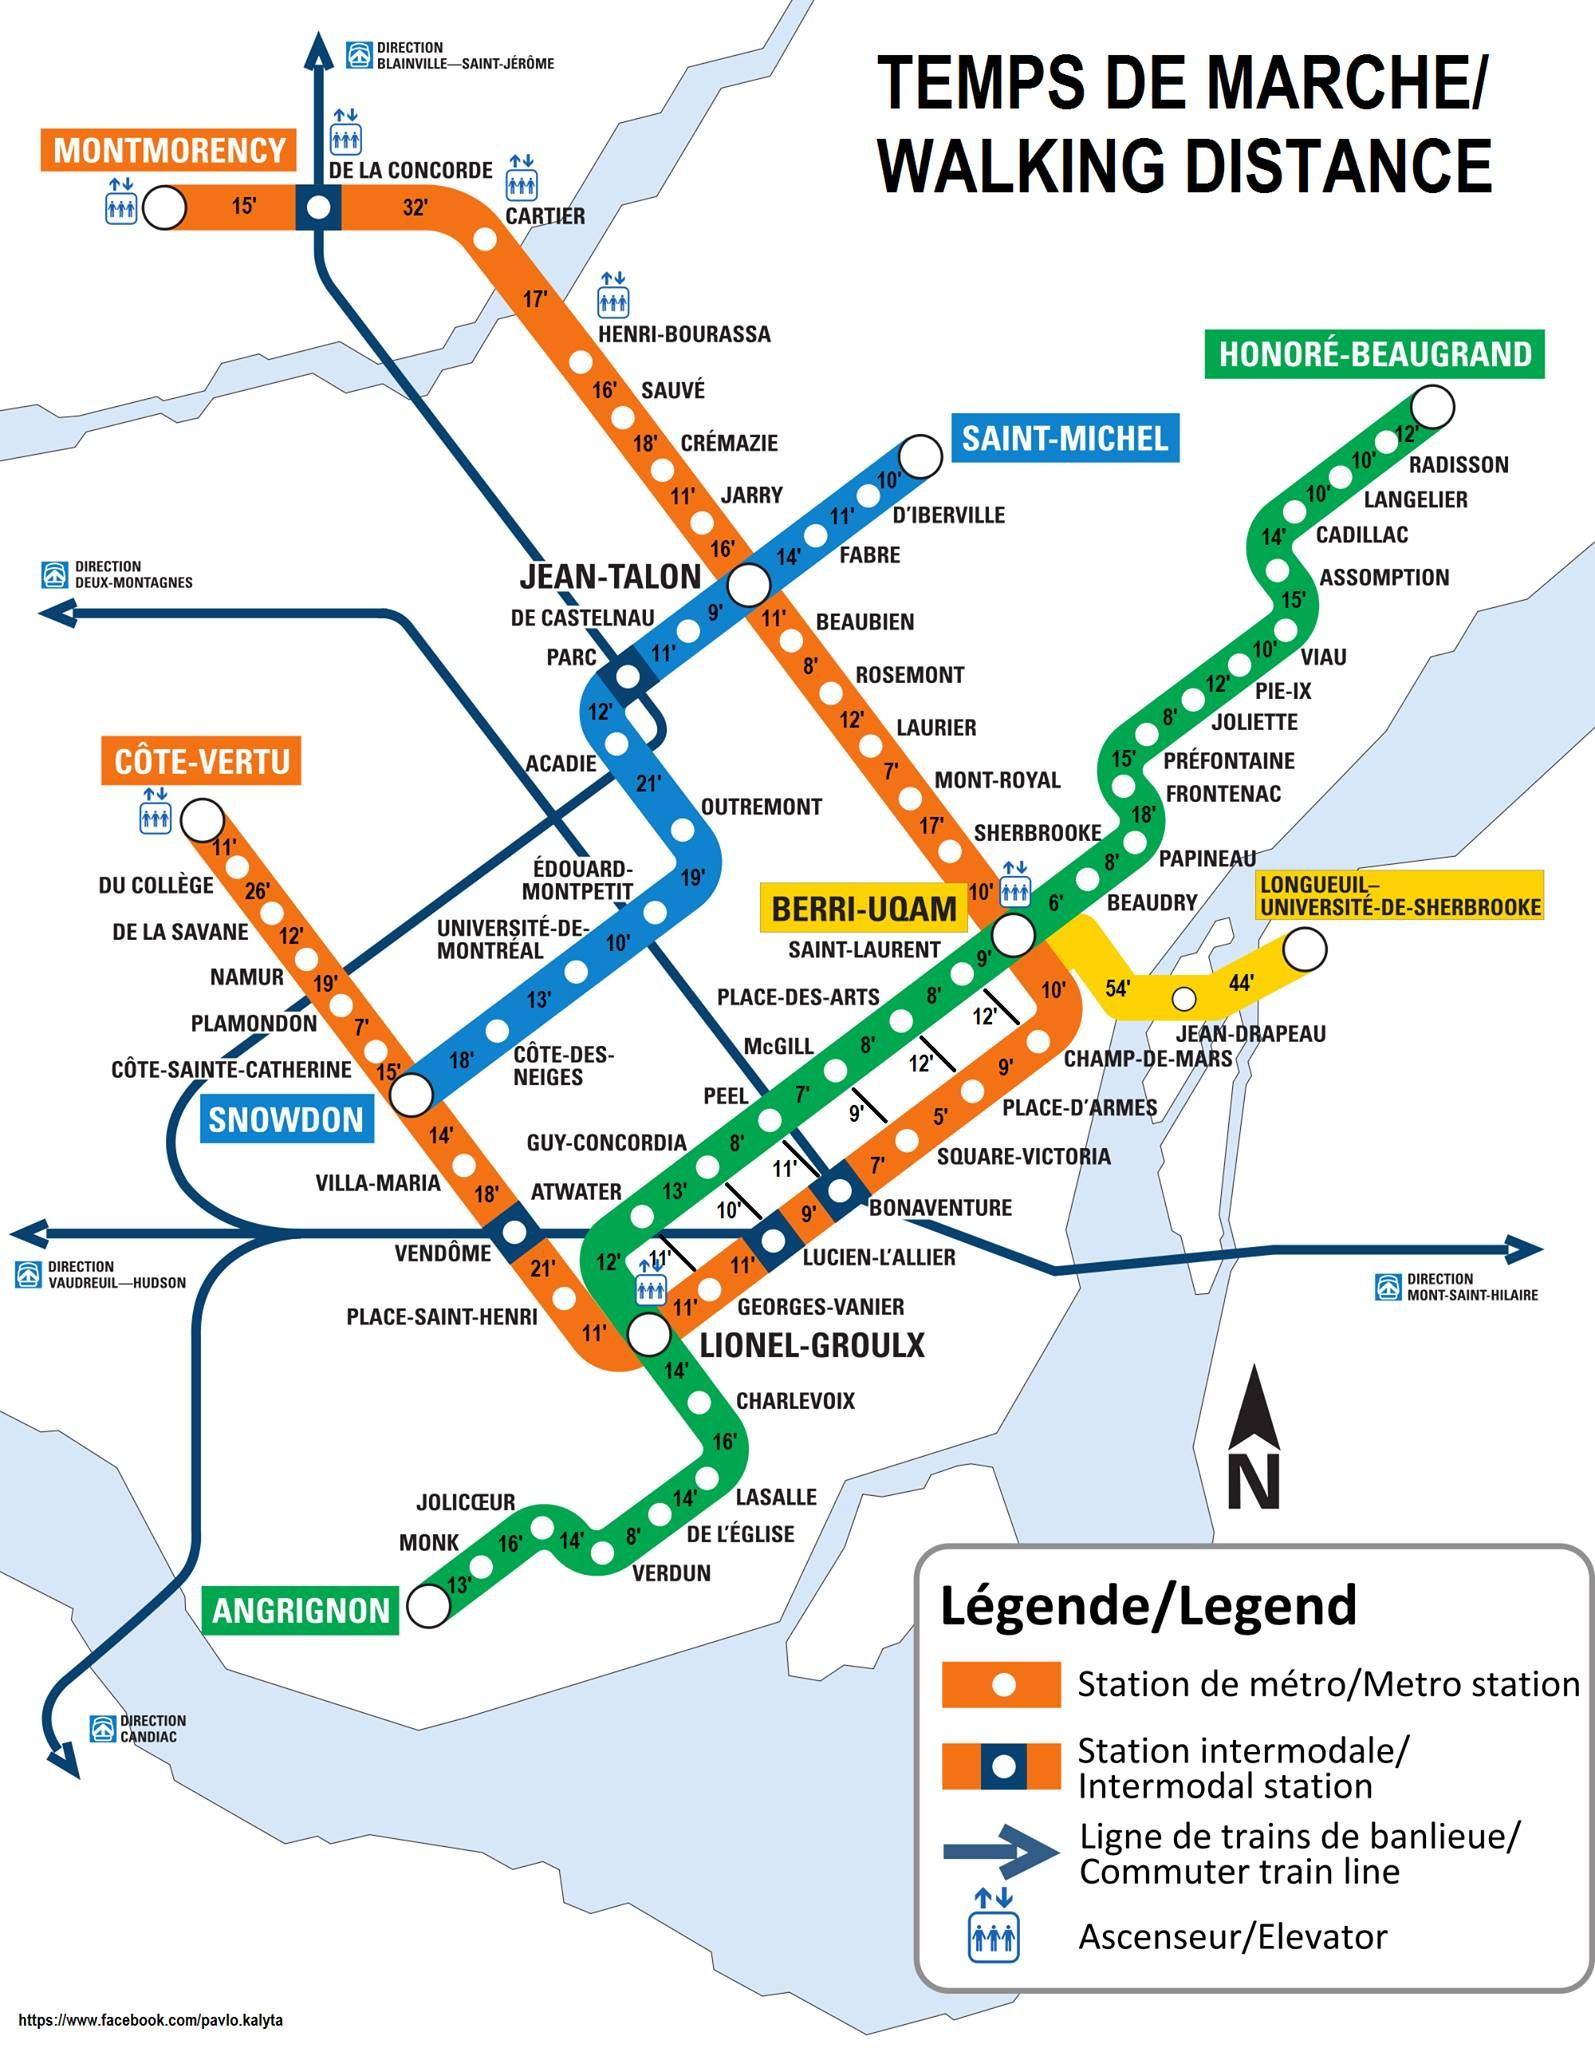 Subway Map View Presentation.This Is Montreal S Walking Distance Metro Map In 2019 Montreal